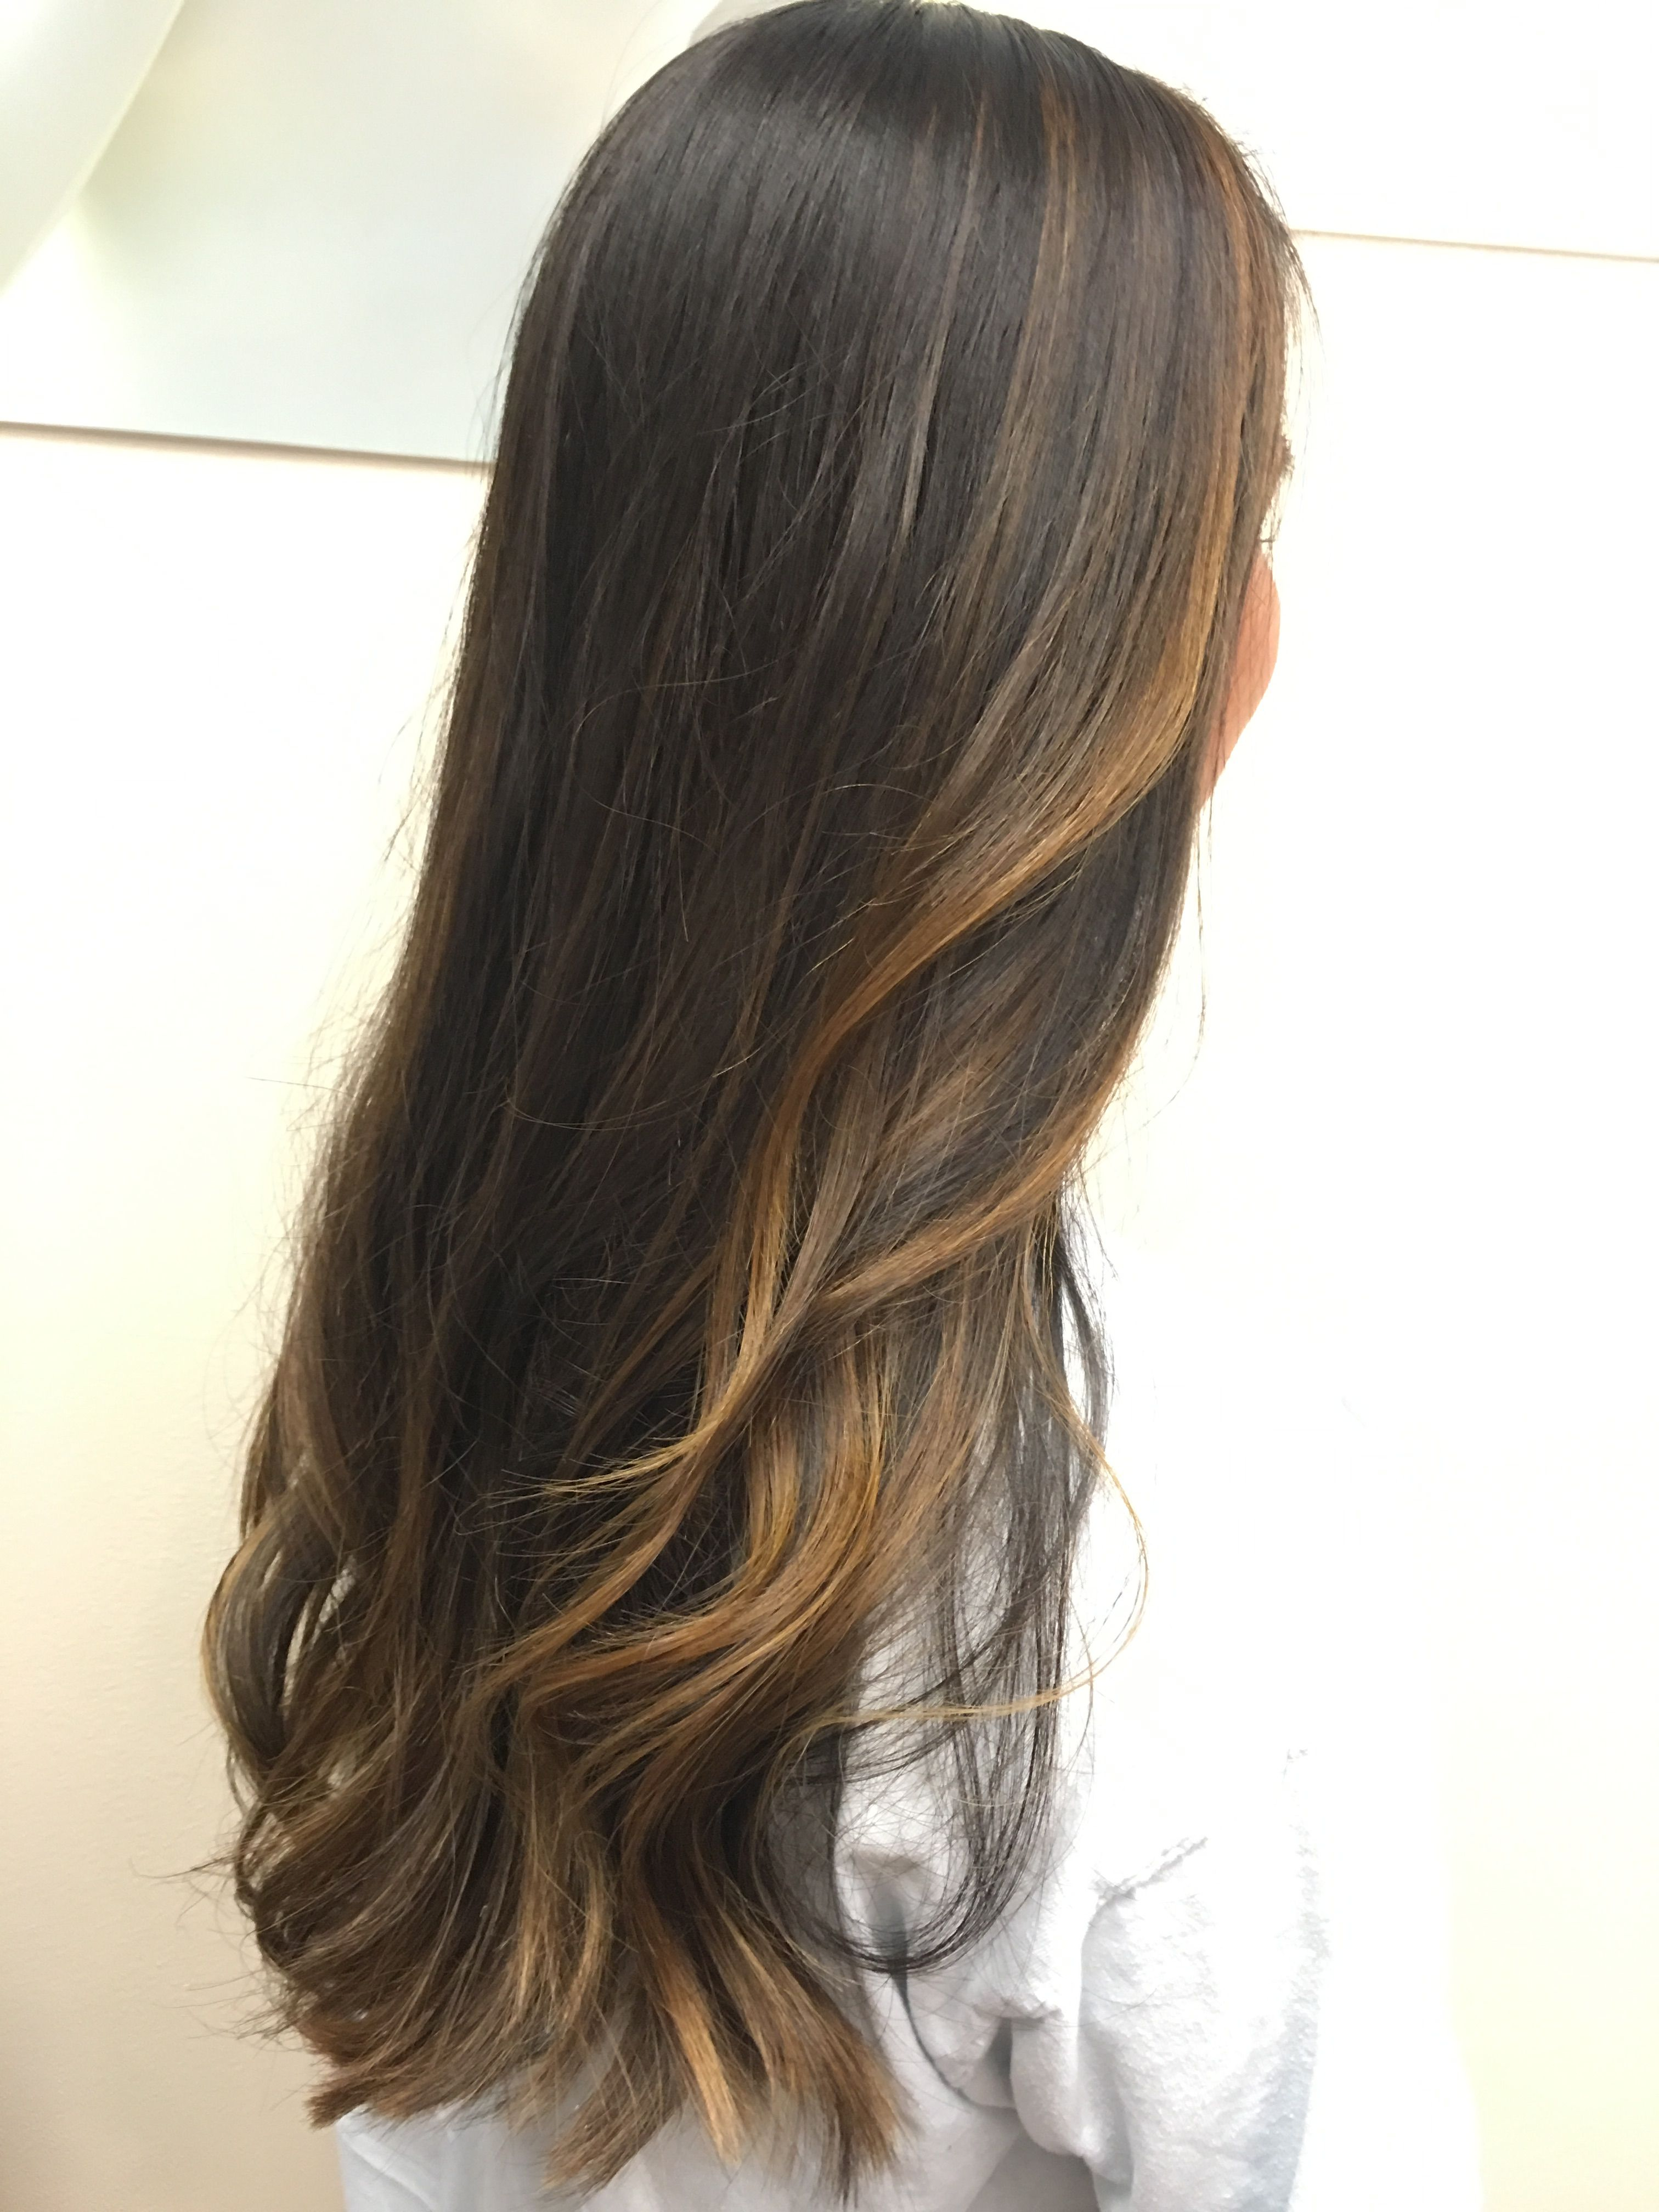 Extra Long Hair Balayage By Www Hairbymaria Net Balayage Hair Extra Long Hair Long Hair Styles